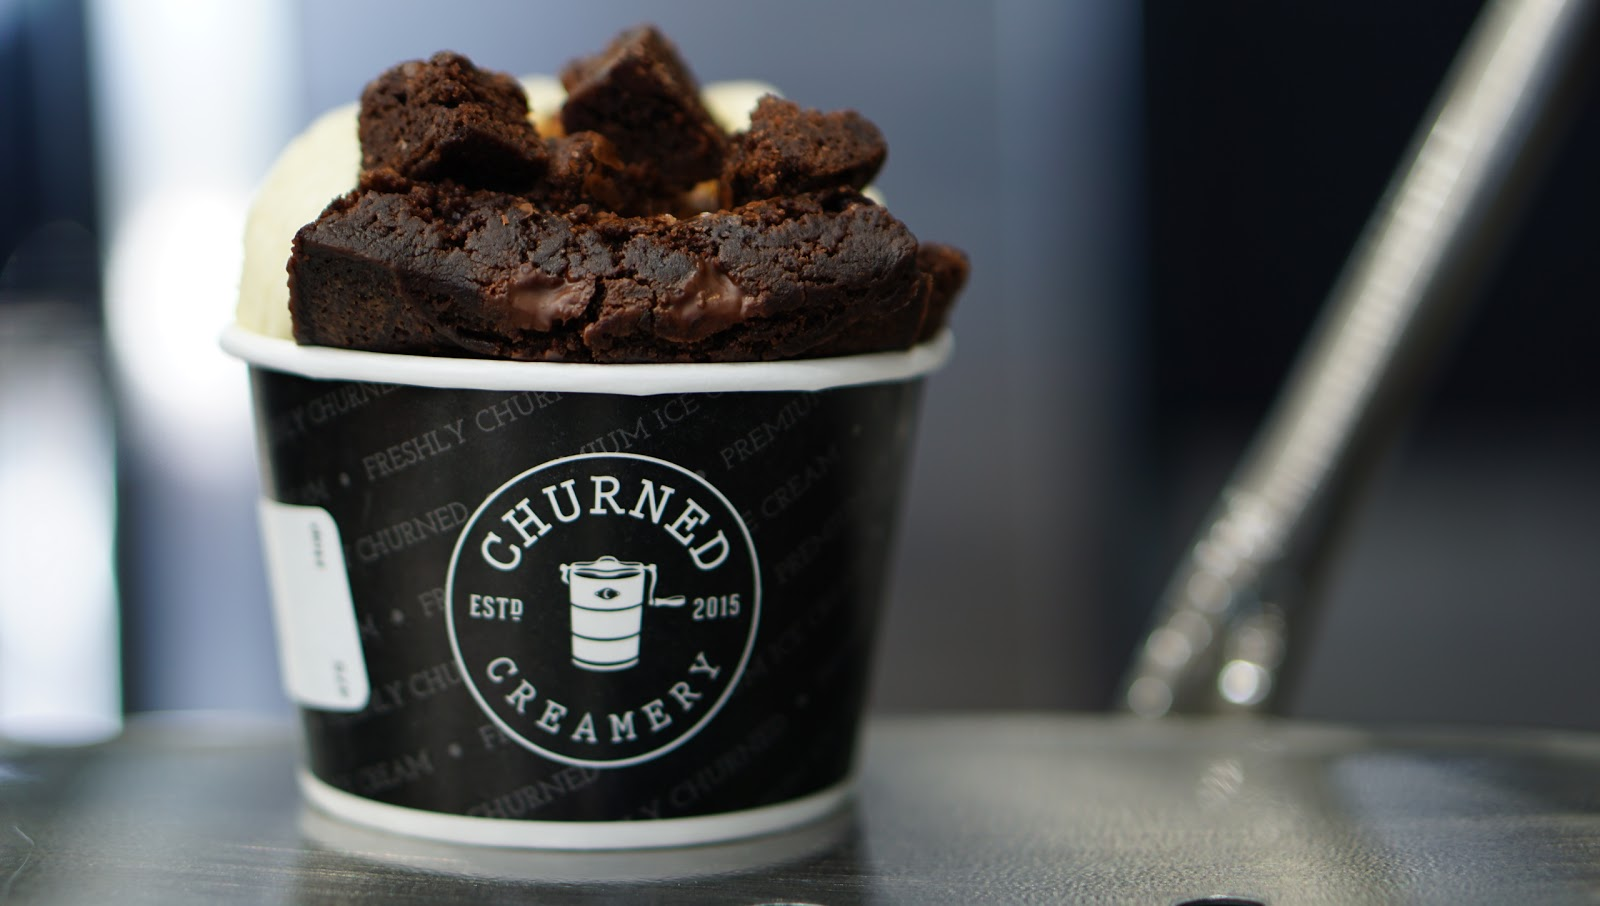 June 10 | Grand Opening of Churned Creamery Irvine - Free Ice Cream For All